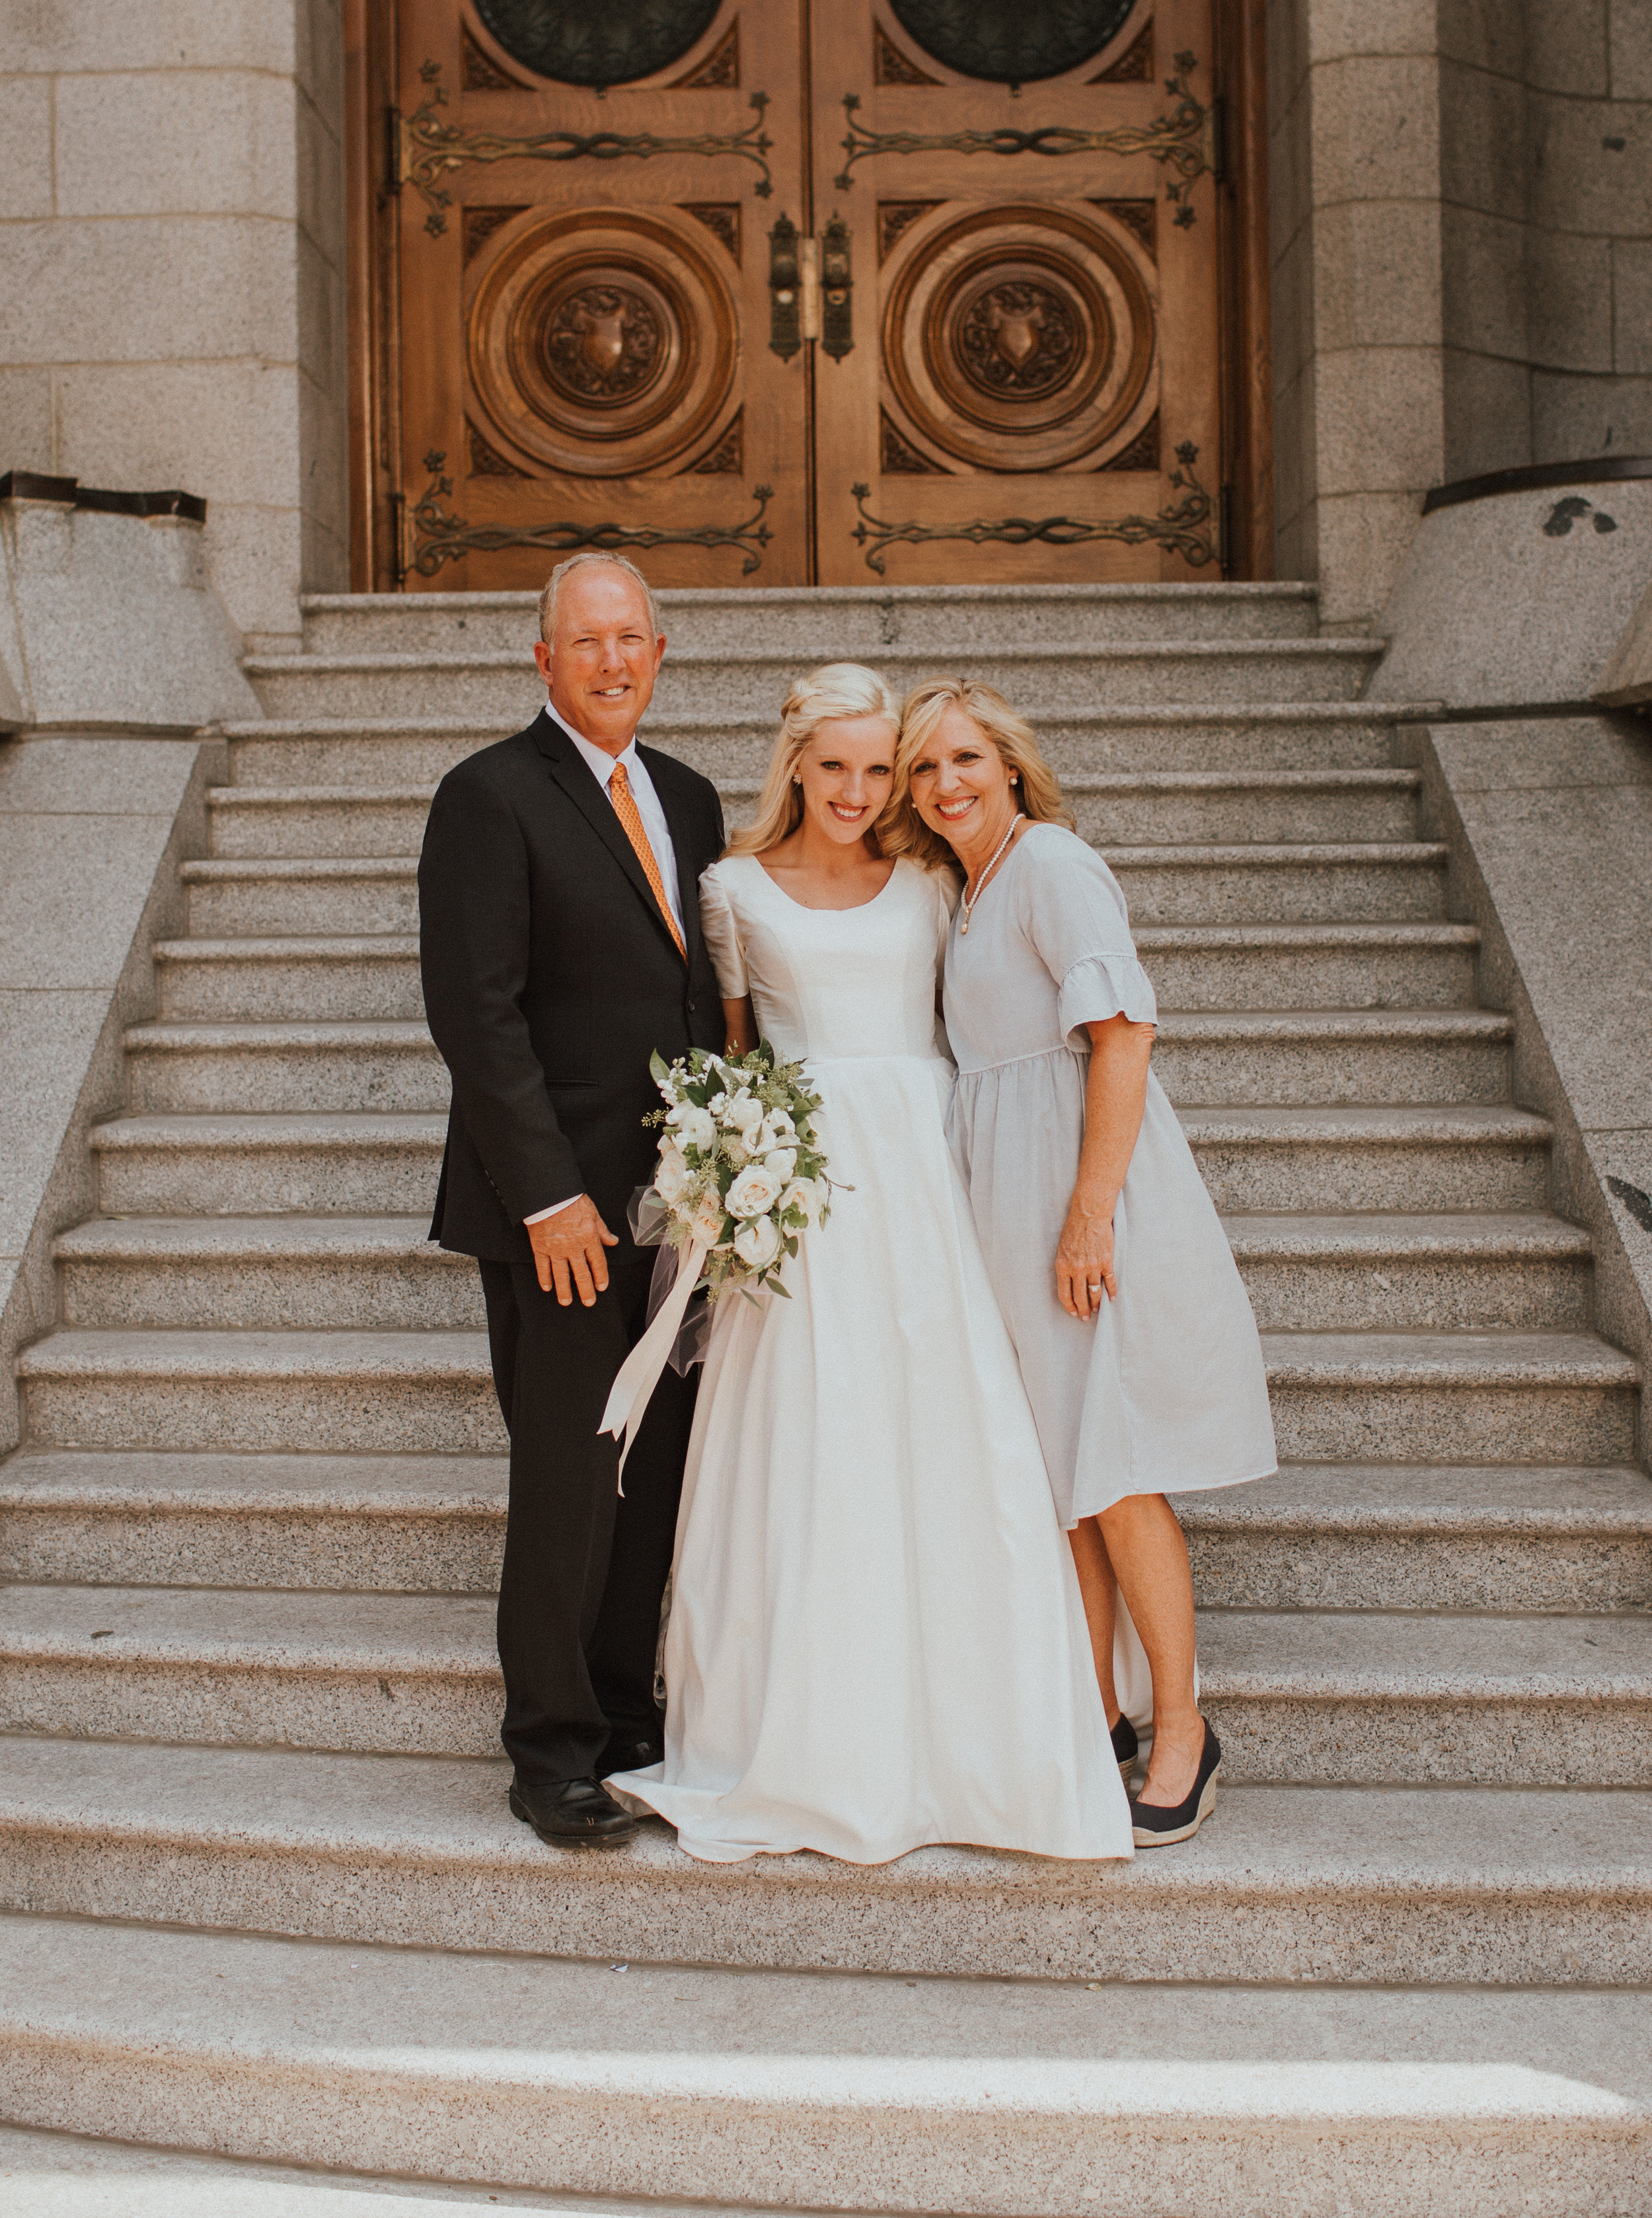 Natalie+Tanner-WeddingDay-50.jpg